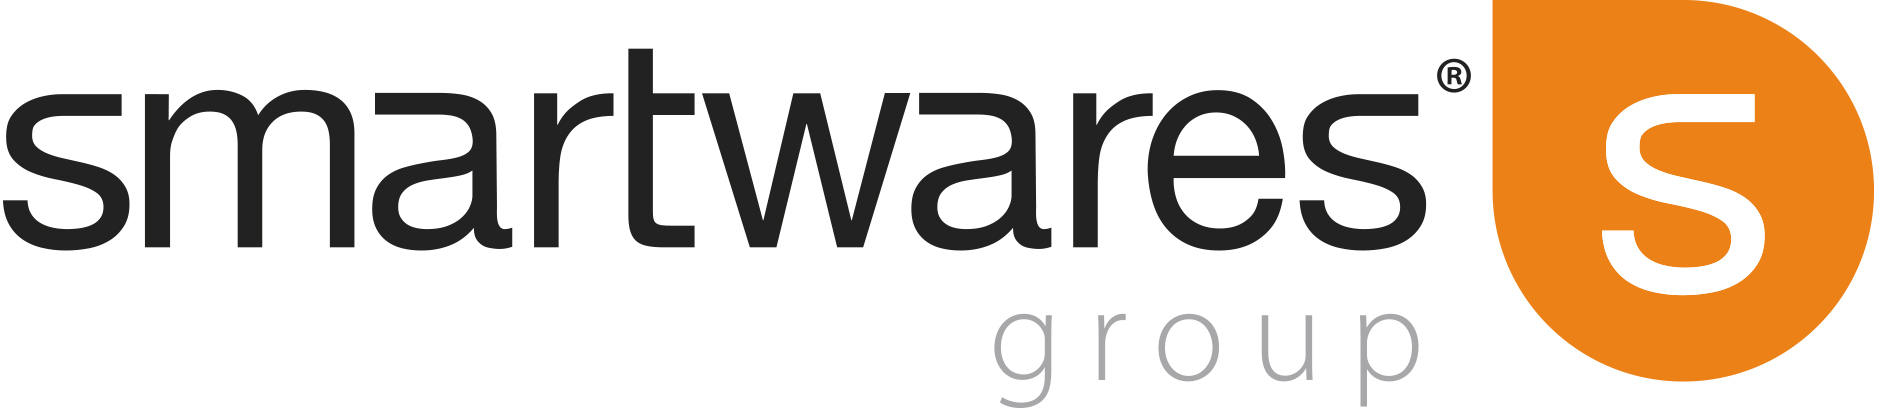 Smartwares Group